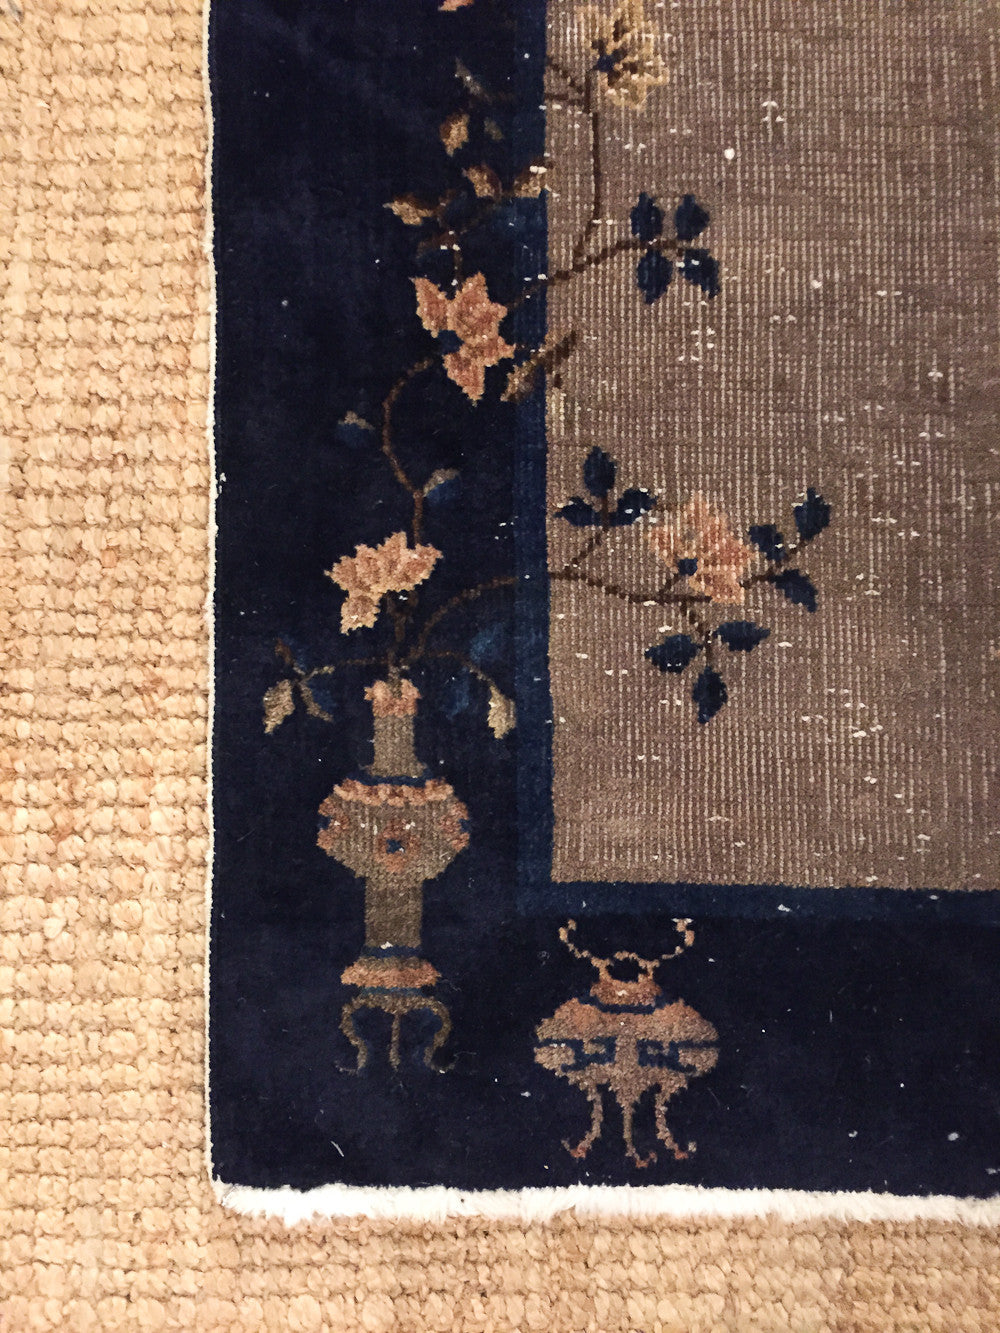 Early Chinese Art Deco Rug